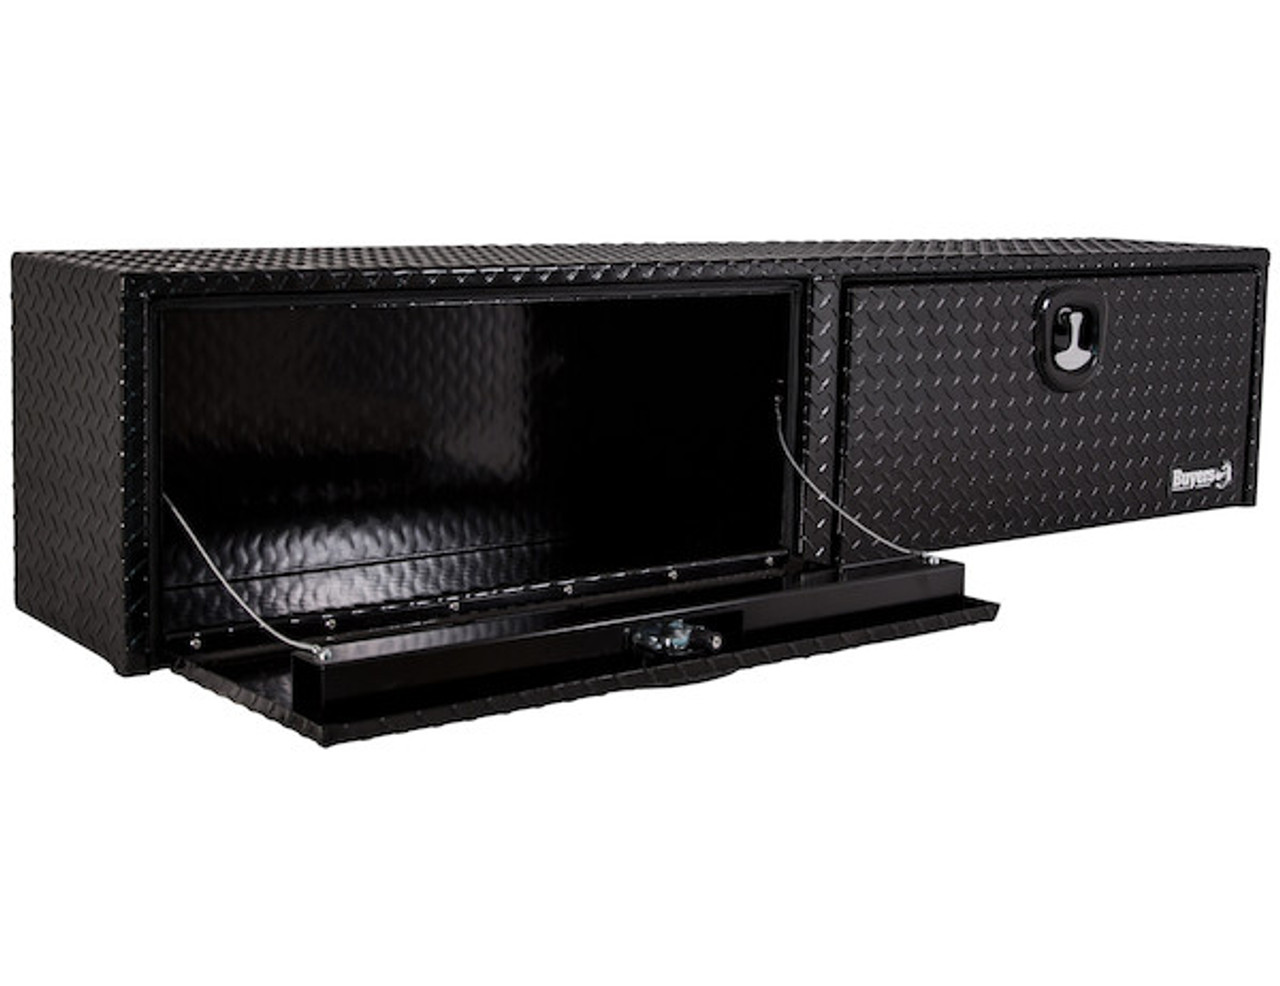 "1721561 BUYERS PRODUCTS DIAMOND TREAD ALUMINUM TOPSIDER TRUCK BOX TOOLBOX 13""Hx16""Dx96""W"